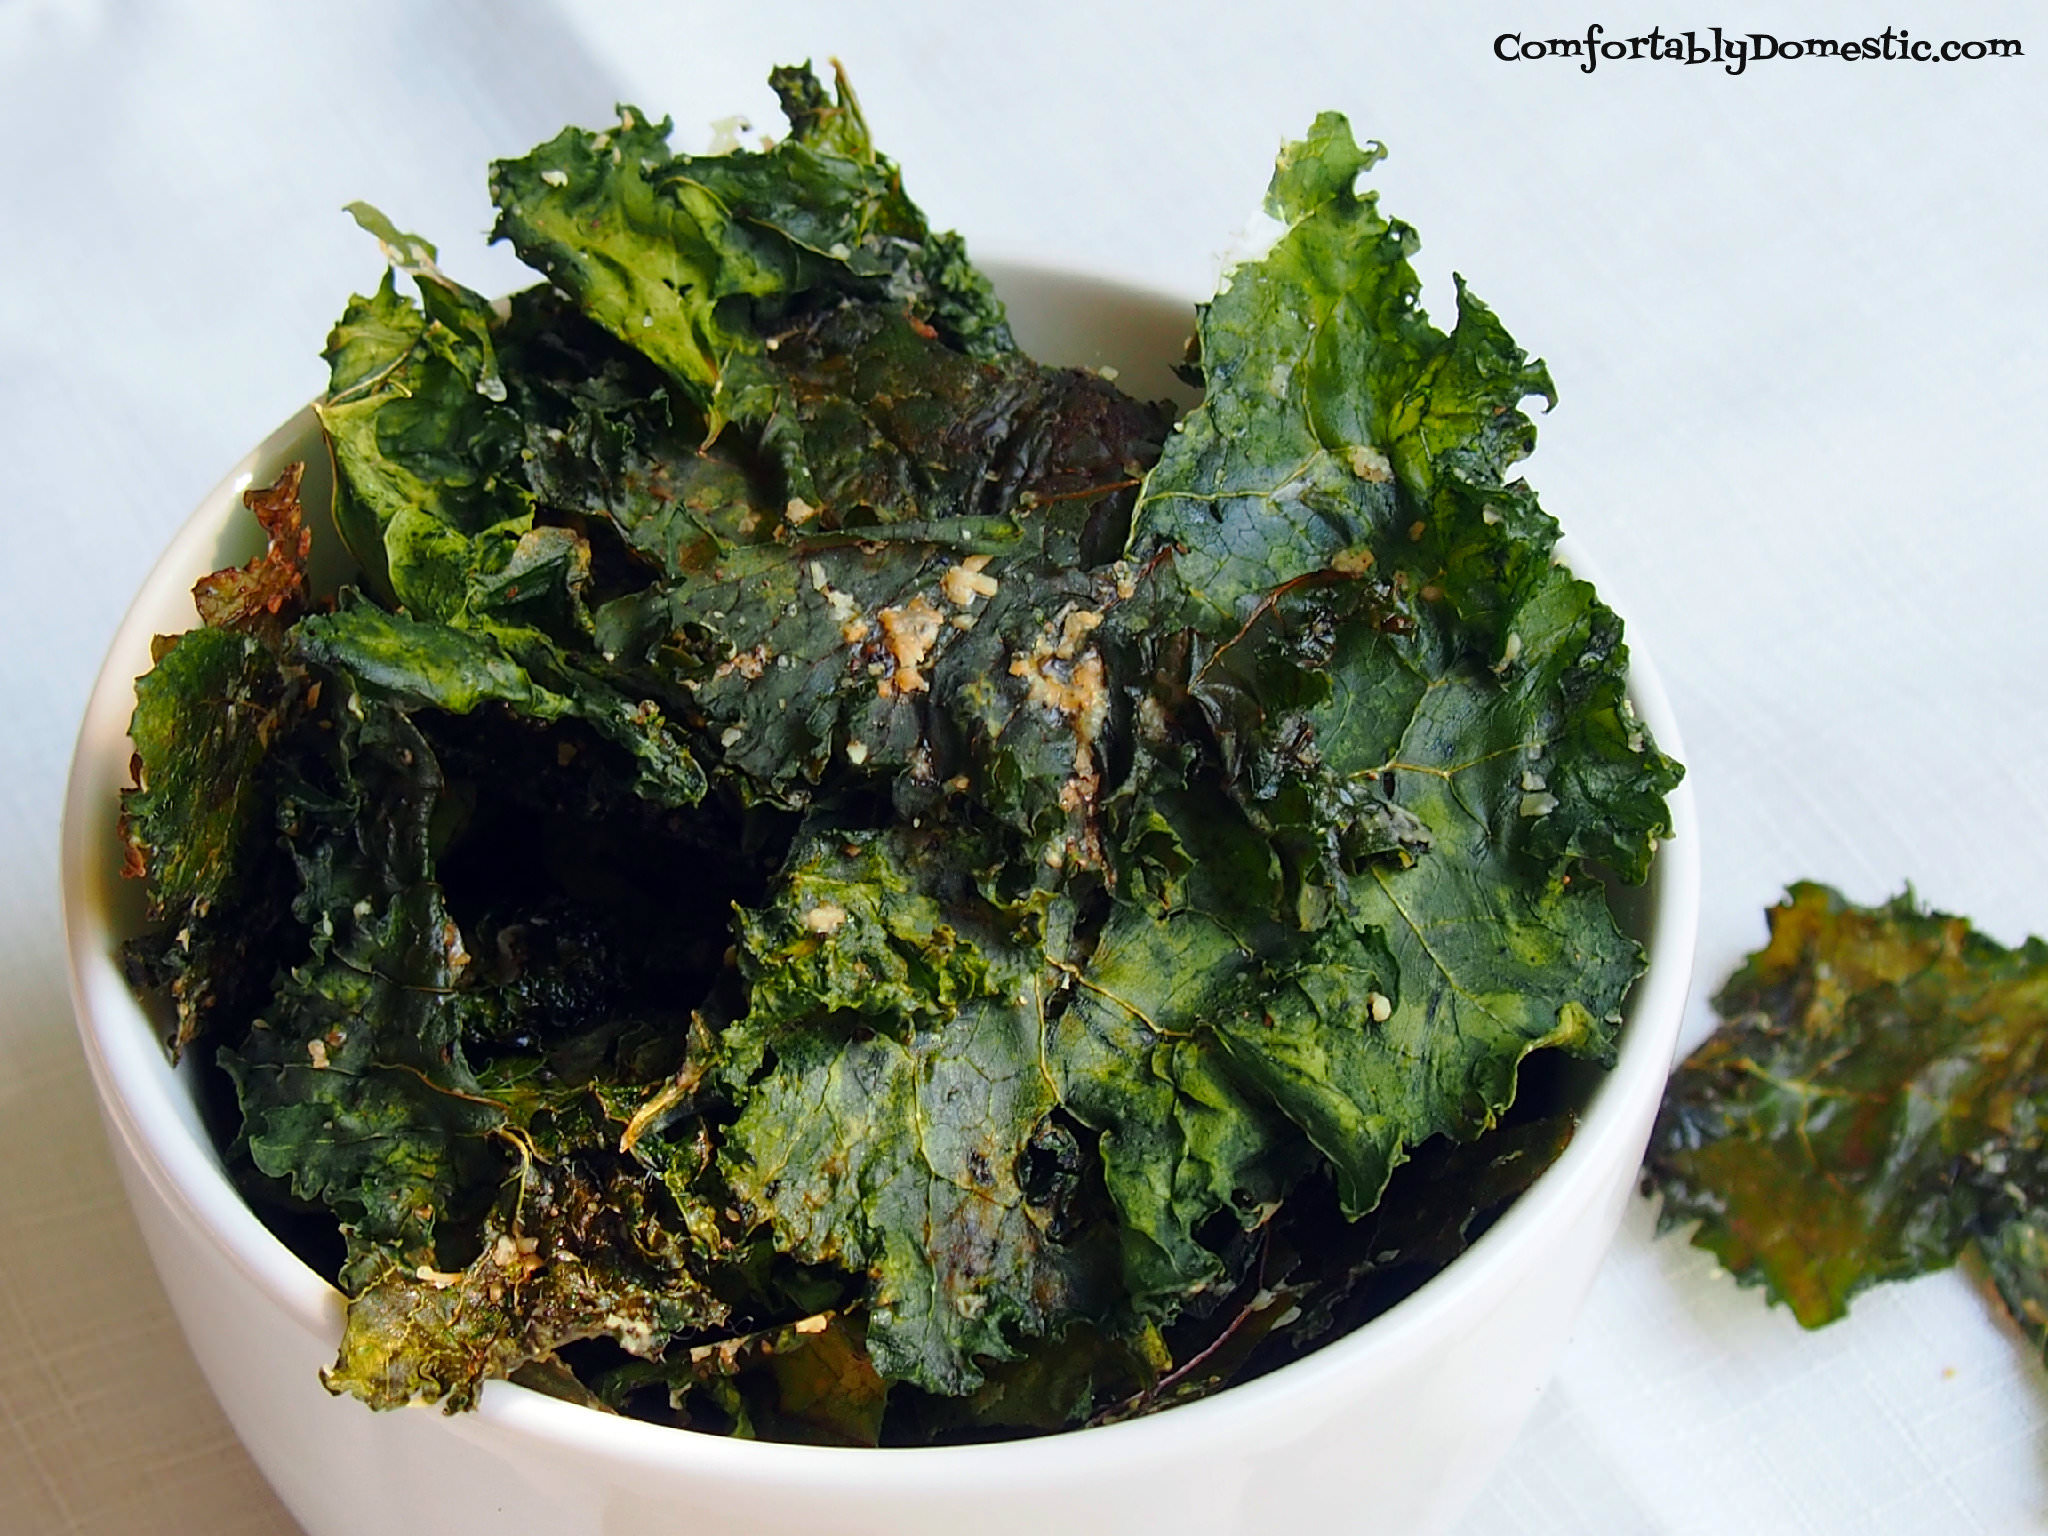 More Cheesey Kale Chips   ComfortablyDomestic.com